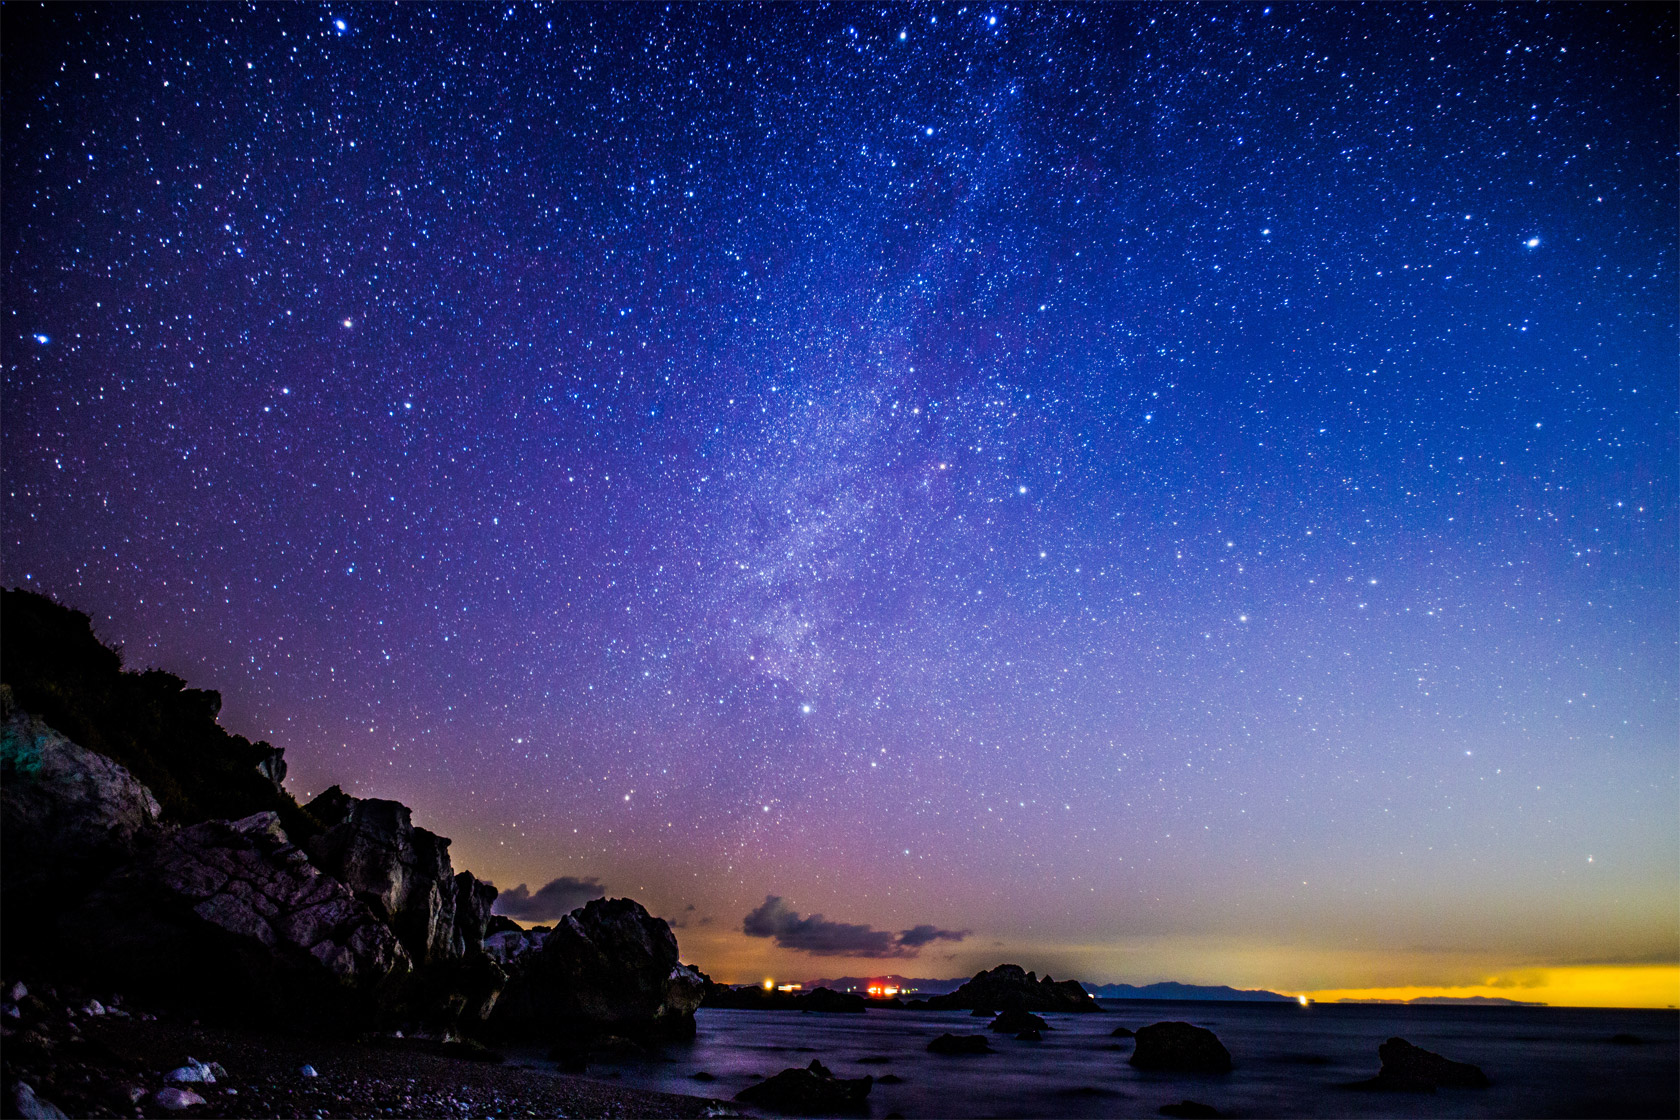 [photo] Astro-photography at night by the sea with the skies filled with stars